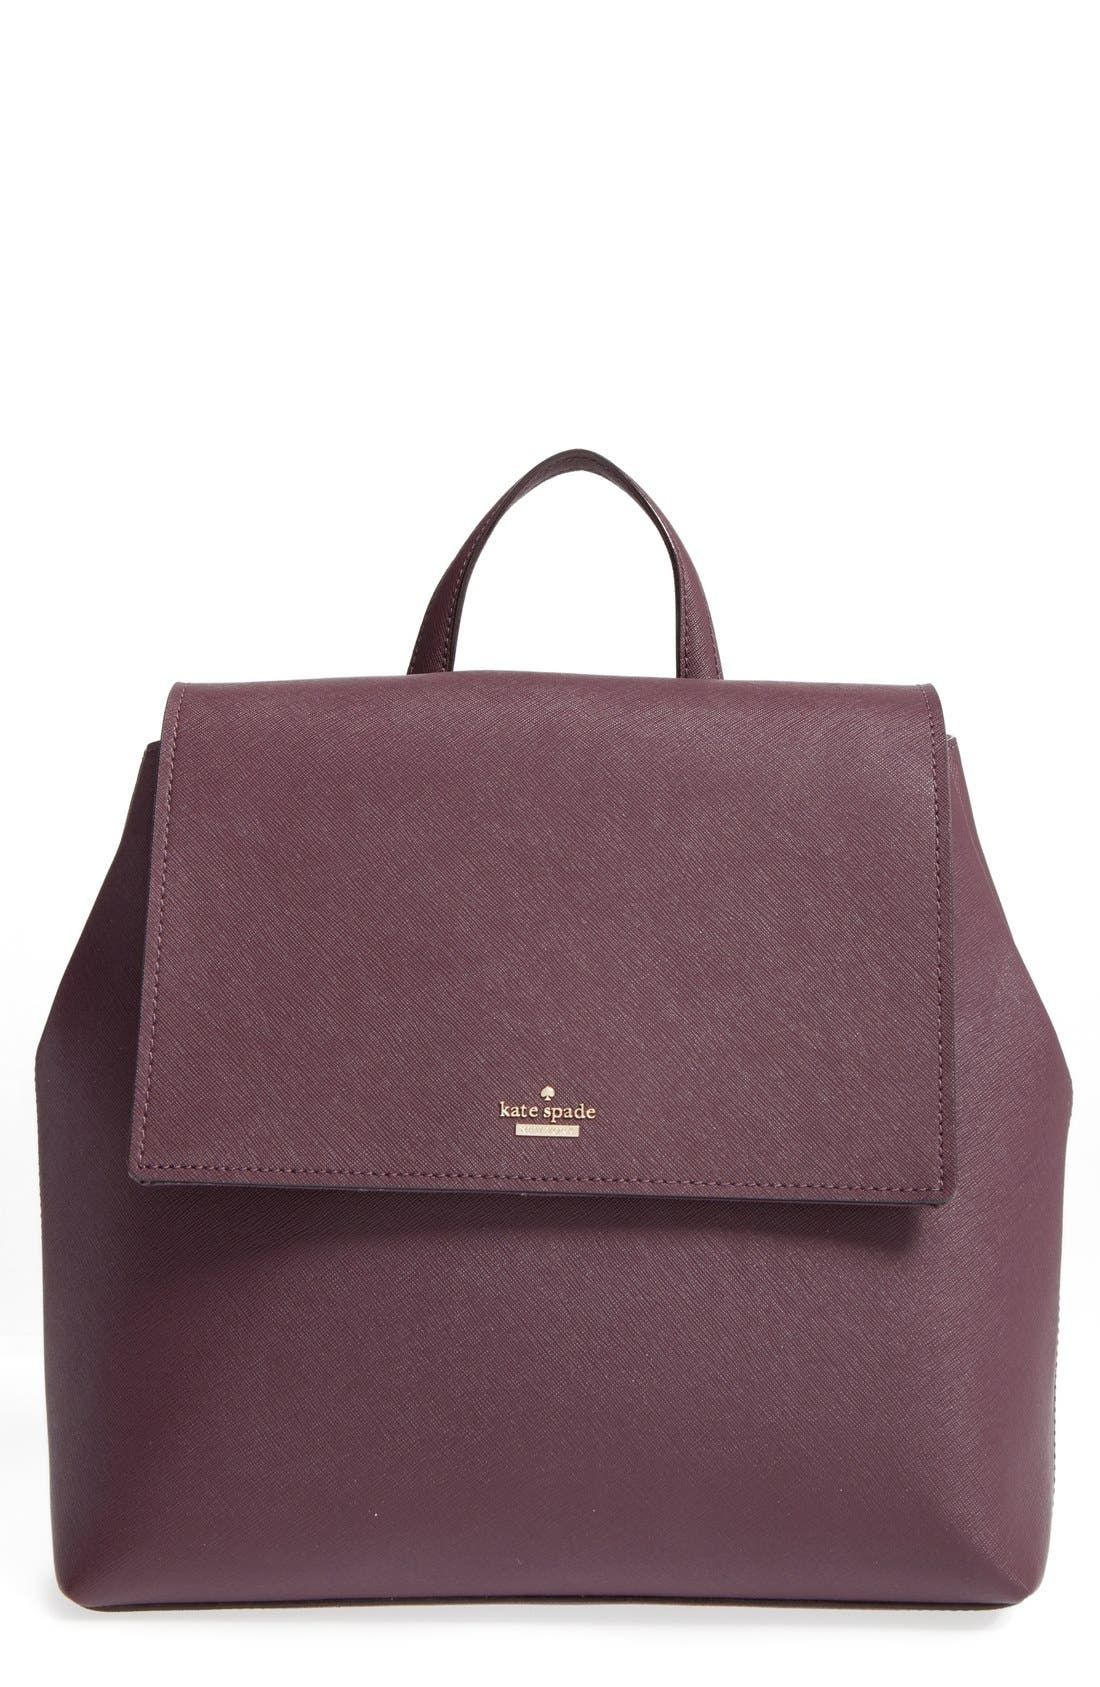 Main Image - kate spade new york 'cameron street - neema' leather backpack